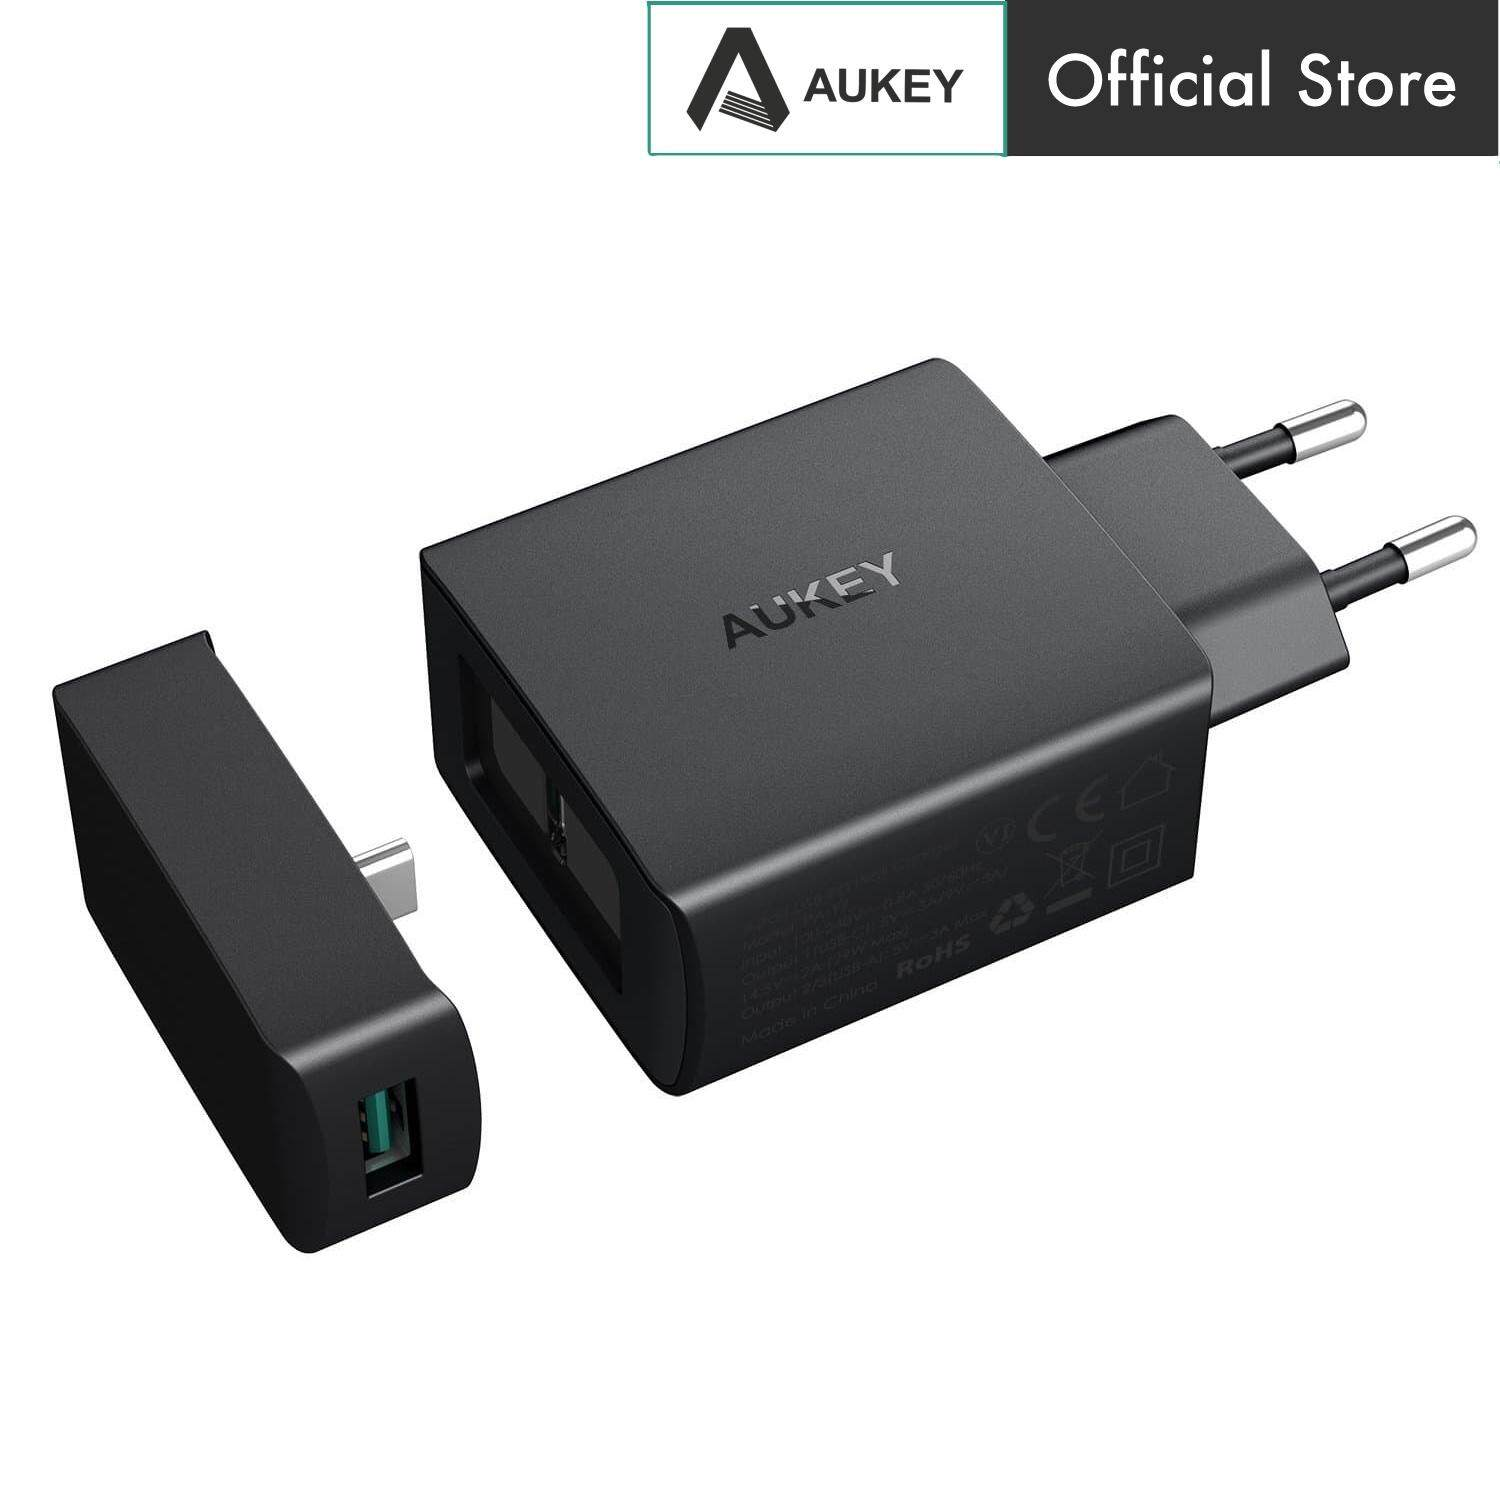 Aukey PA-Y7 29W Amp Duo Power Delivery 3.0 Type C 1+2 Port Turbo Wall Charger - EU Plug